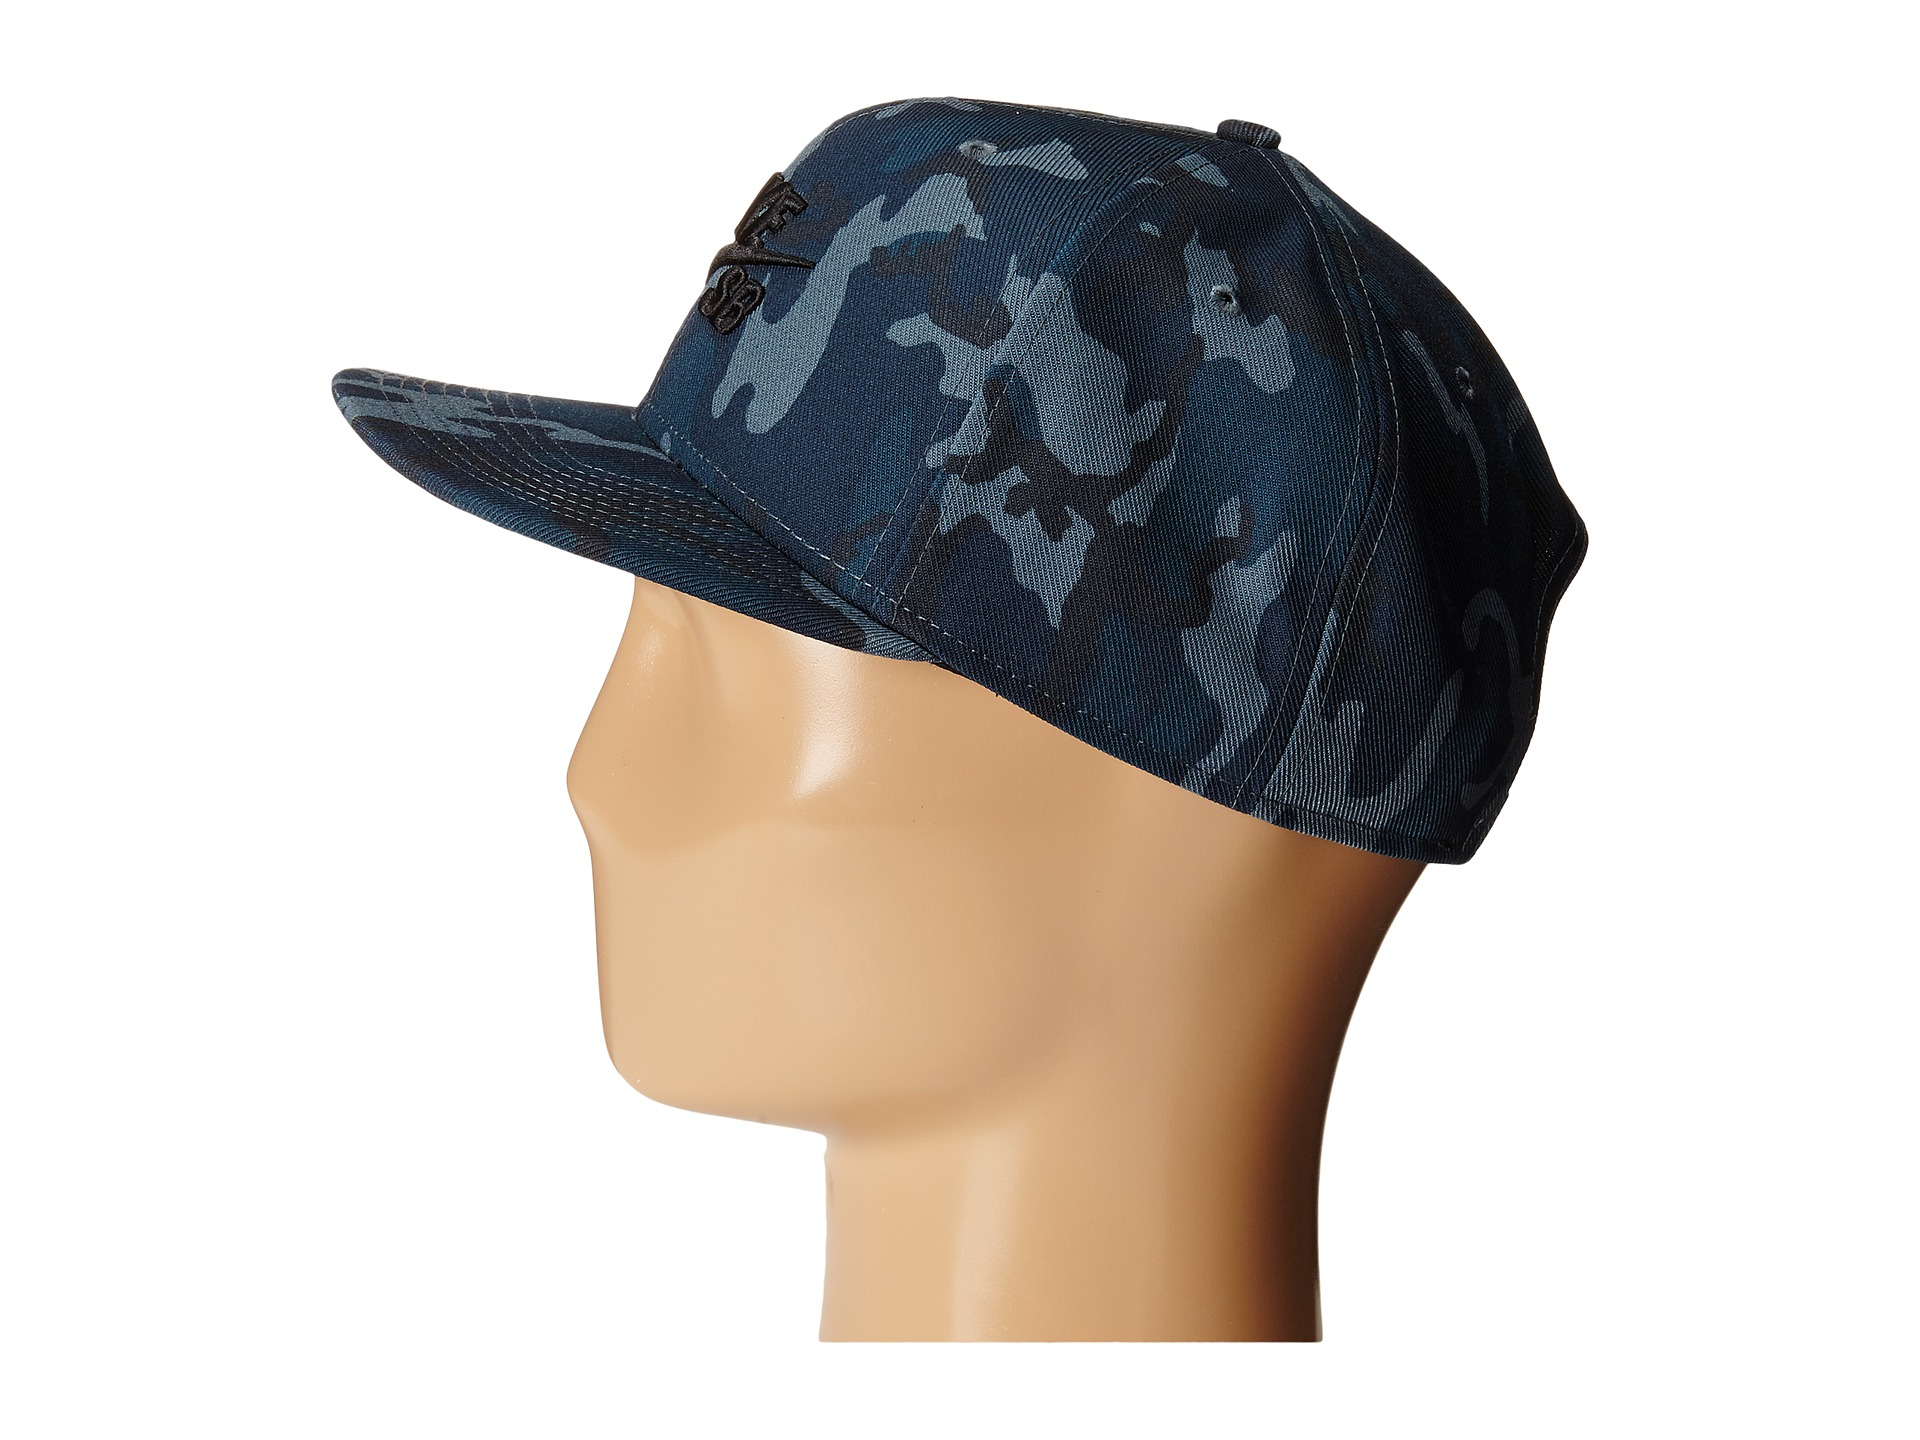 d6bb7357d12 reduced nike sb snapback cap sb camouflage e272e 4ec1a  official lyst nike  performance camo trucker hat in blue for men 73c62 129f7